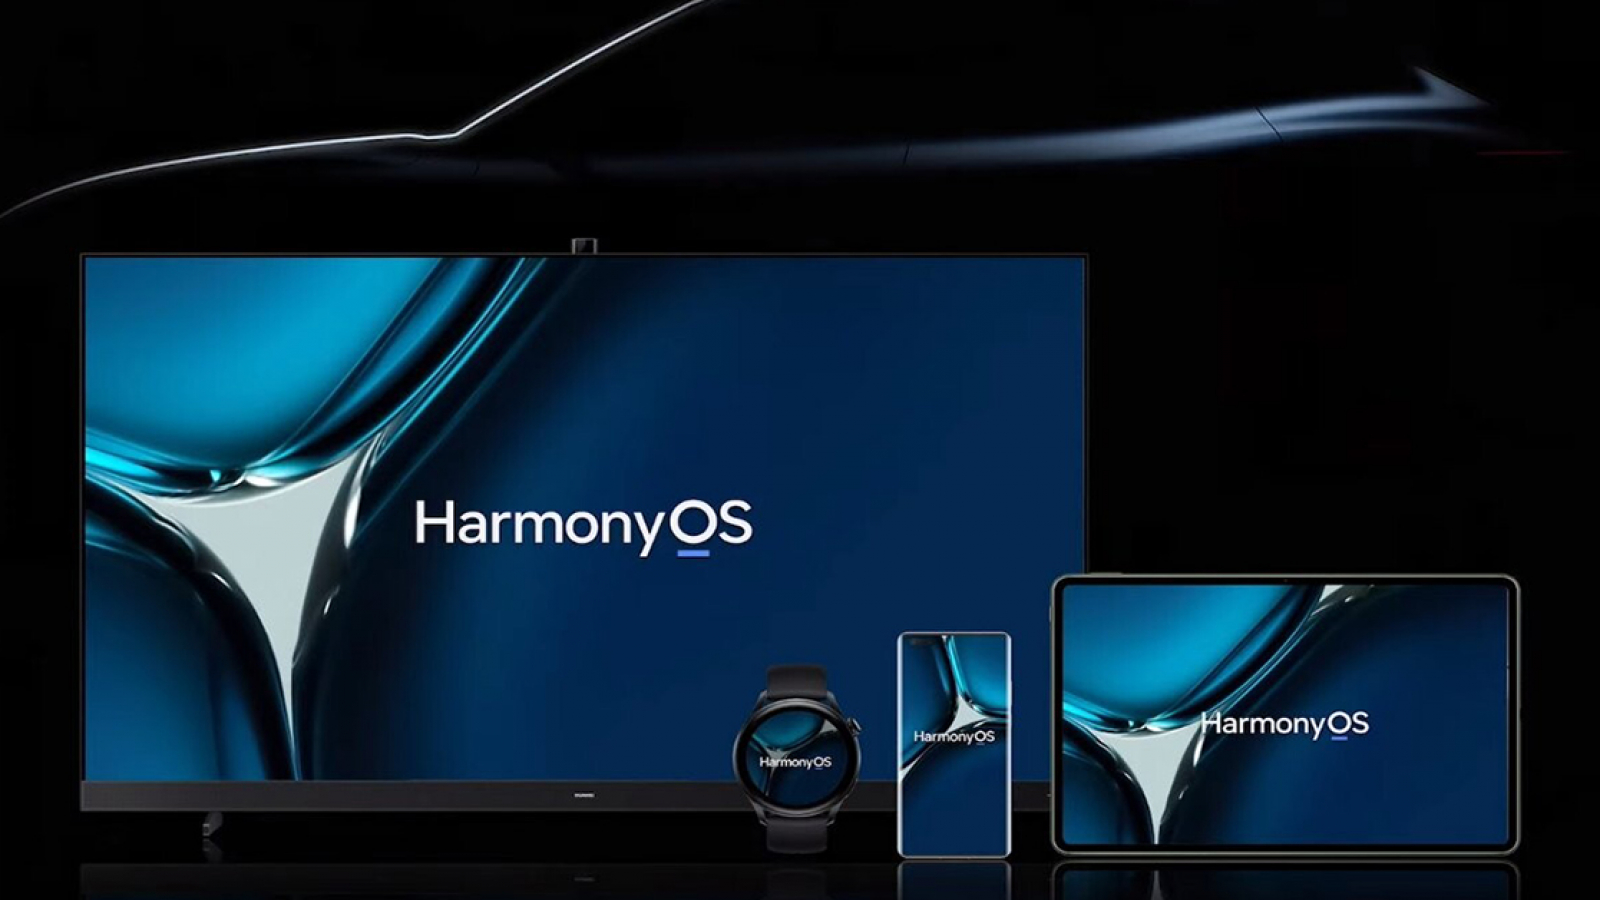 huawei-harmony-productos-port